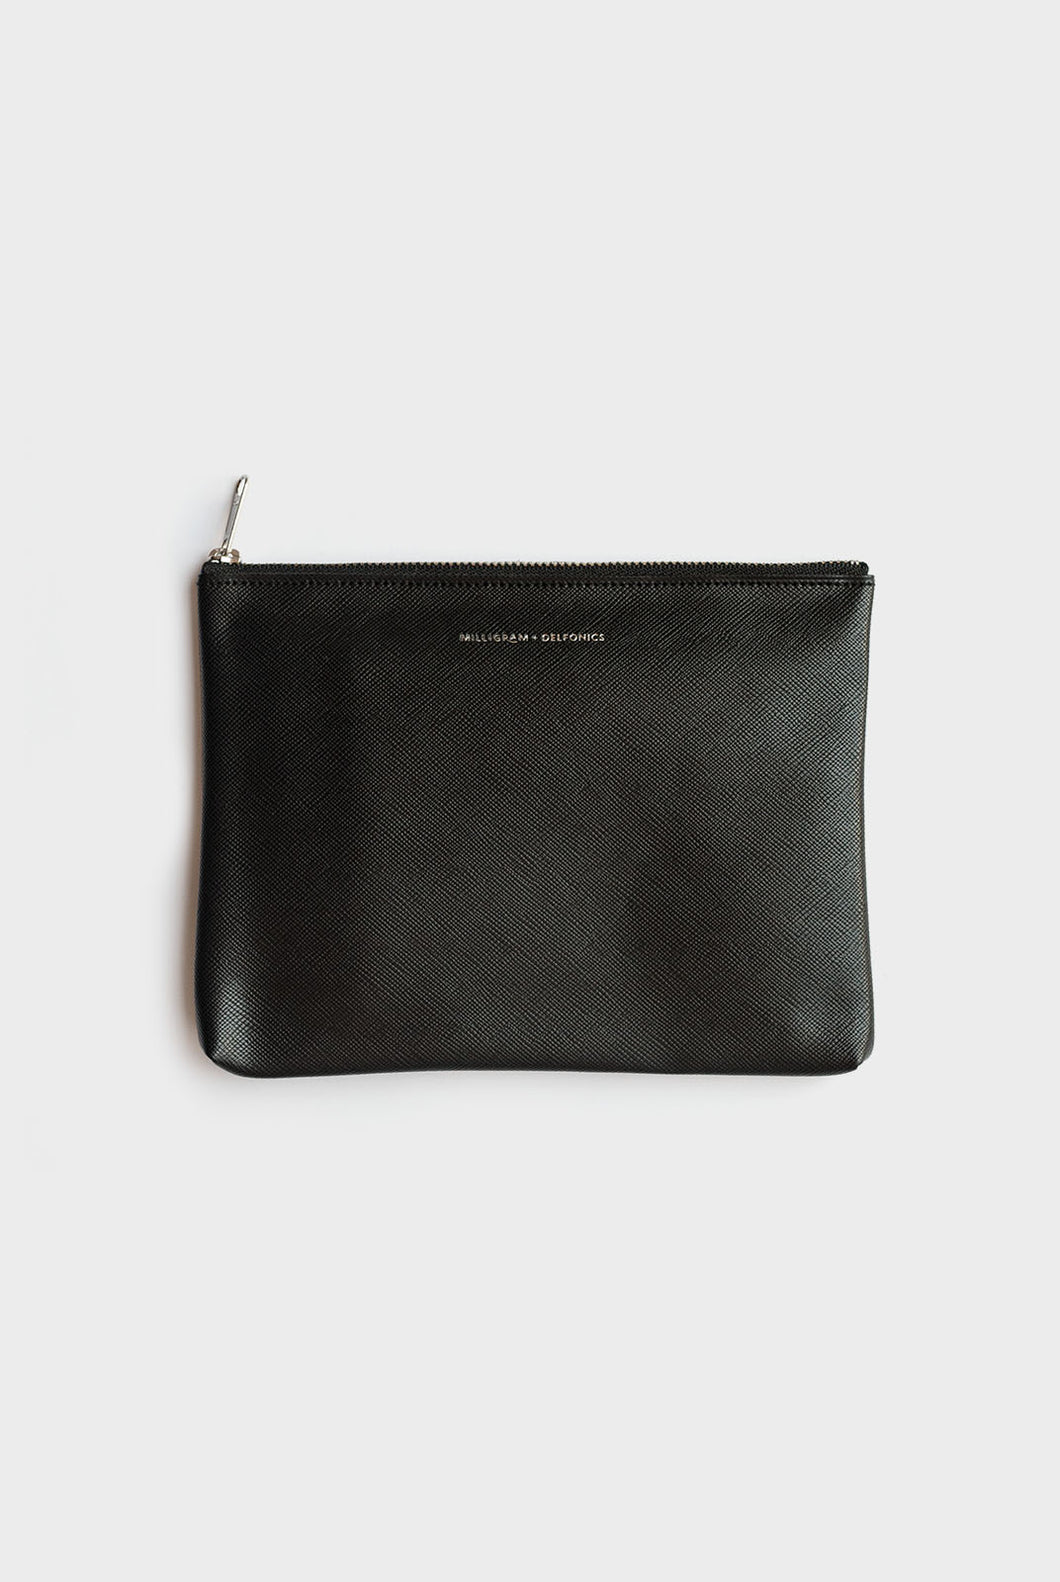 Milligram + Delfonics Collaboration - Pouch - Medium (19.5 x 14cm) - Black